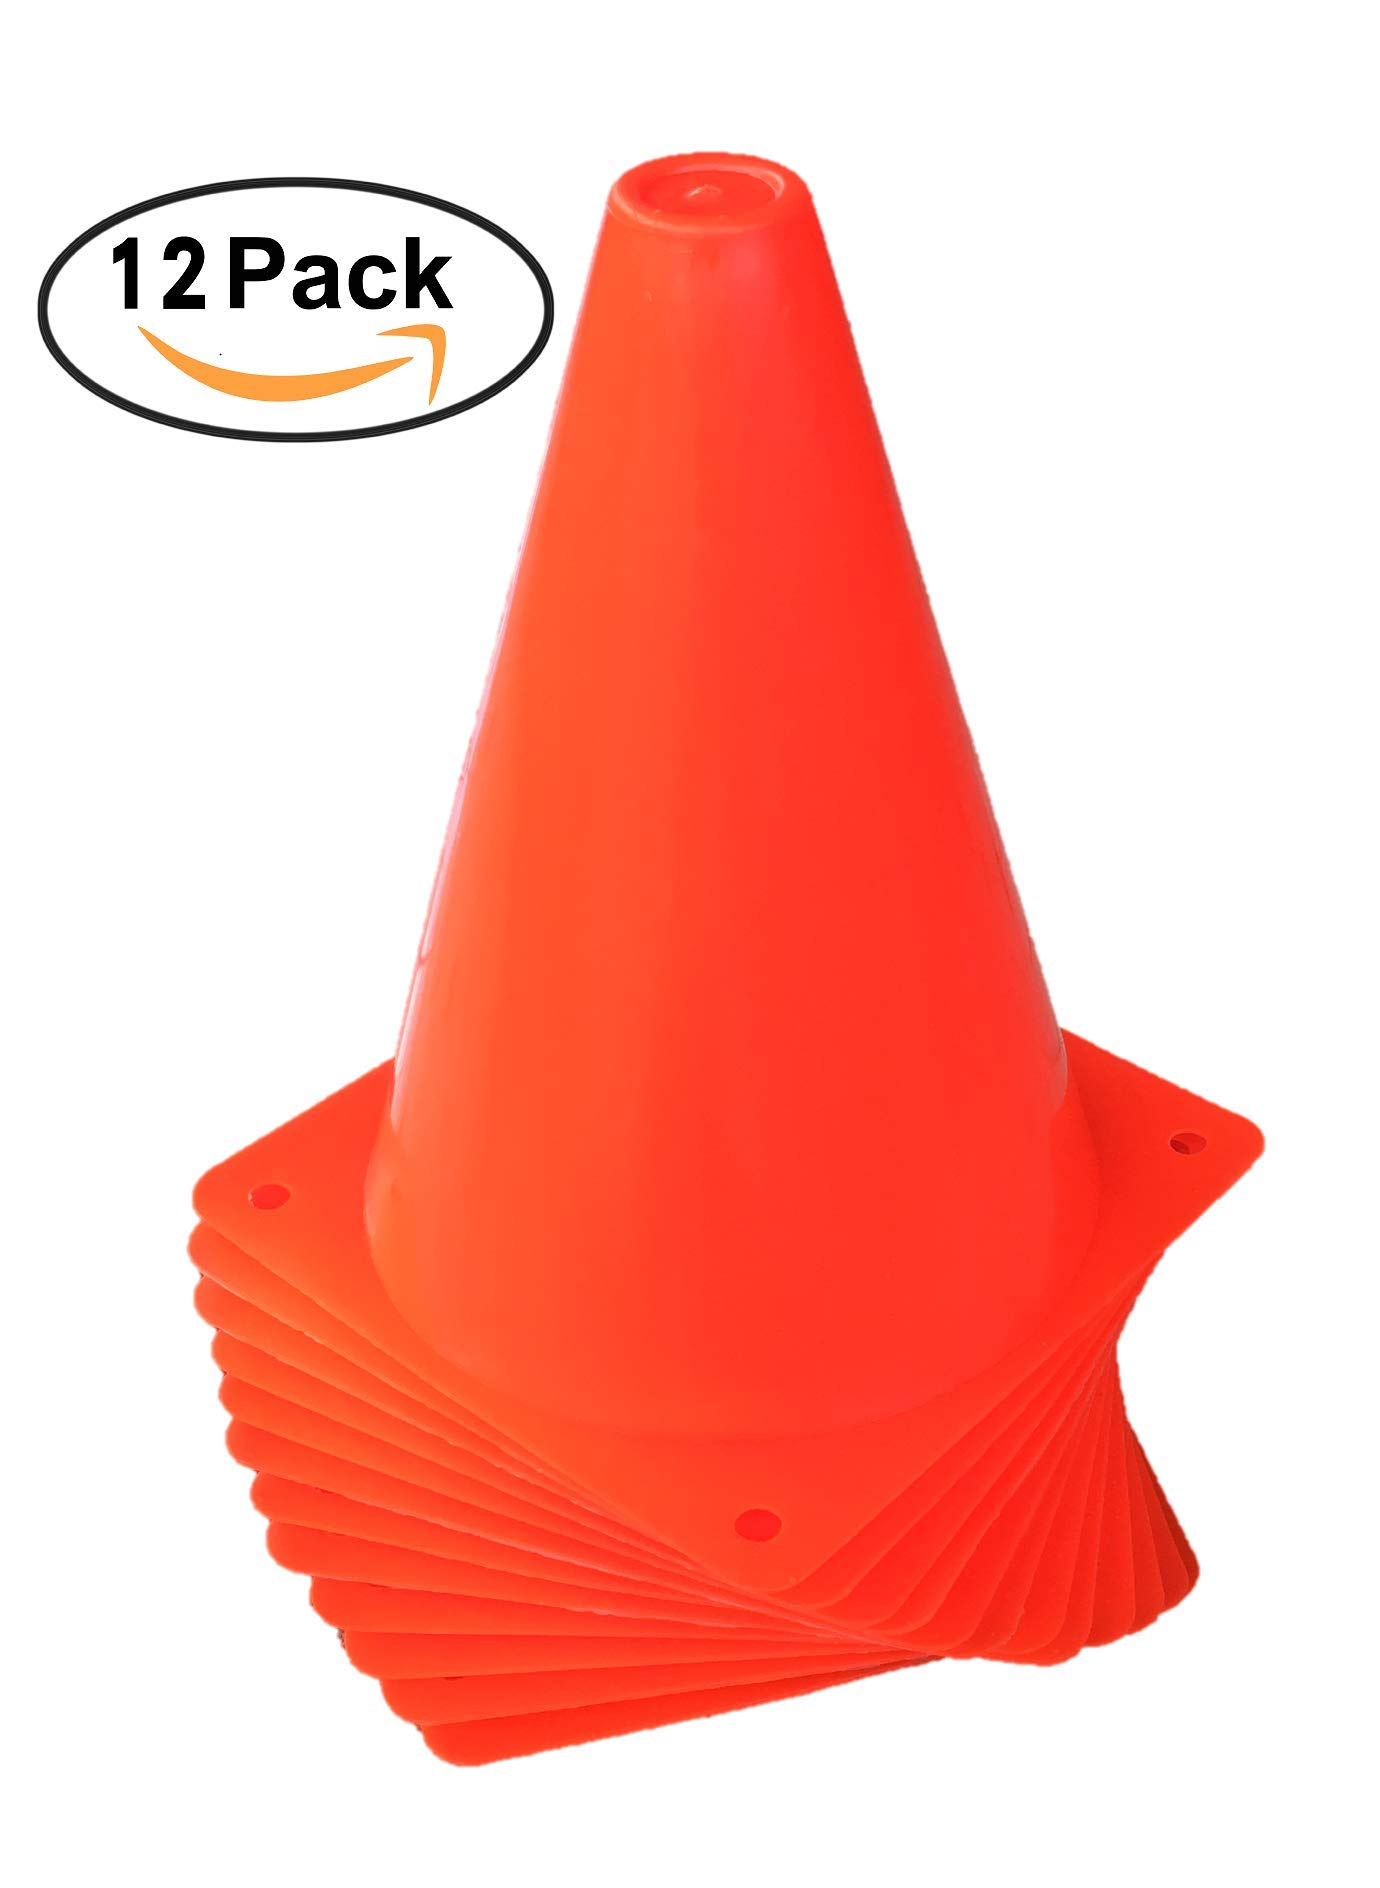 WOWGEEK 7.5 Inch Plastic Sport Training Traffic Cone 12 Orange Traffic Safety Cones Sign Sport Soccer Football Training Cone Small 7'' (Set of 12) Sports Outdoor Indoor Marker Activity Agility 7 Inch